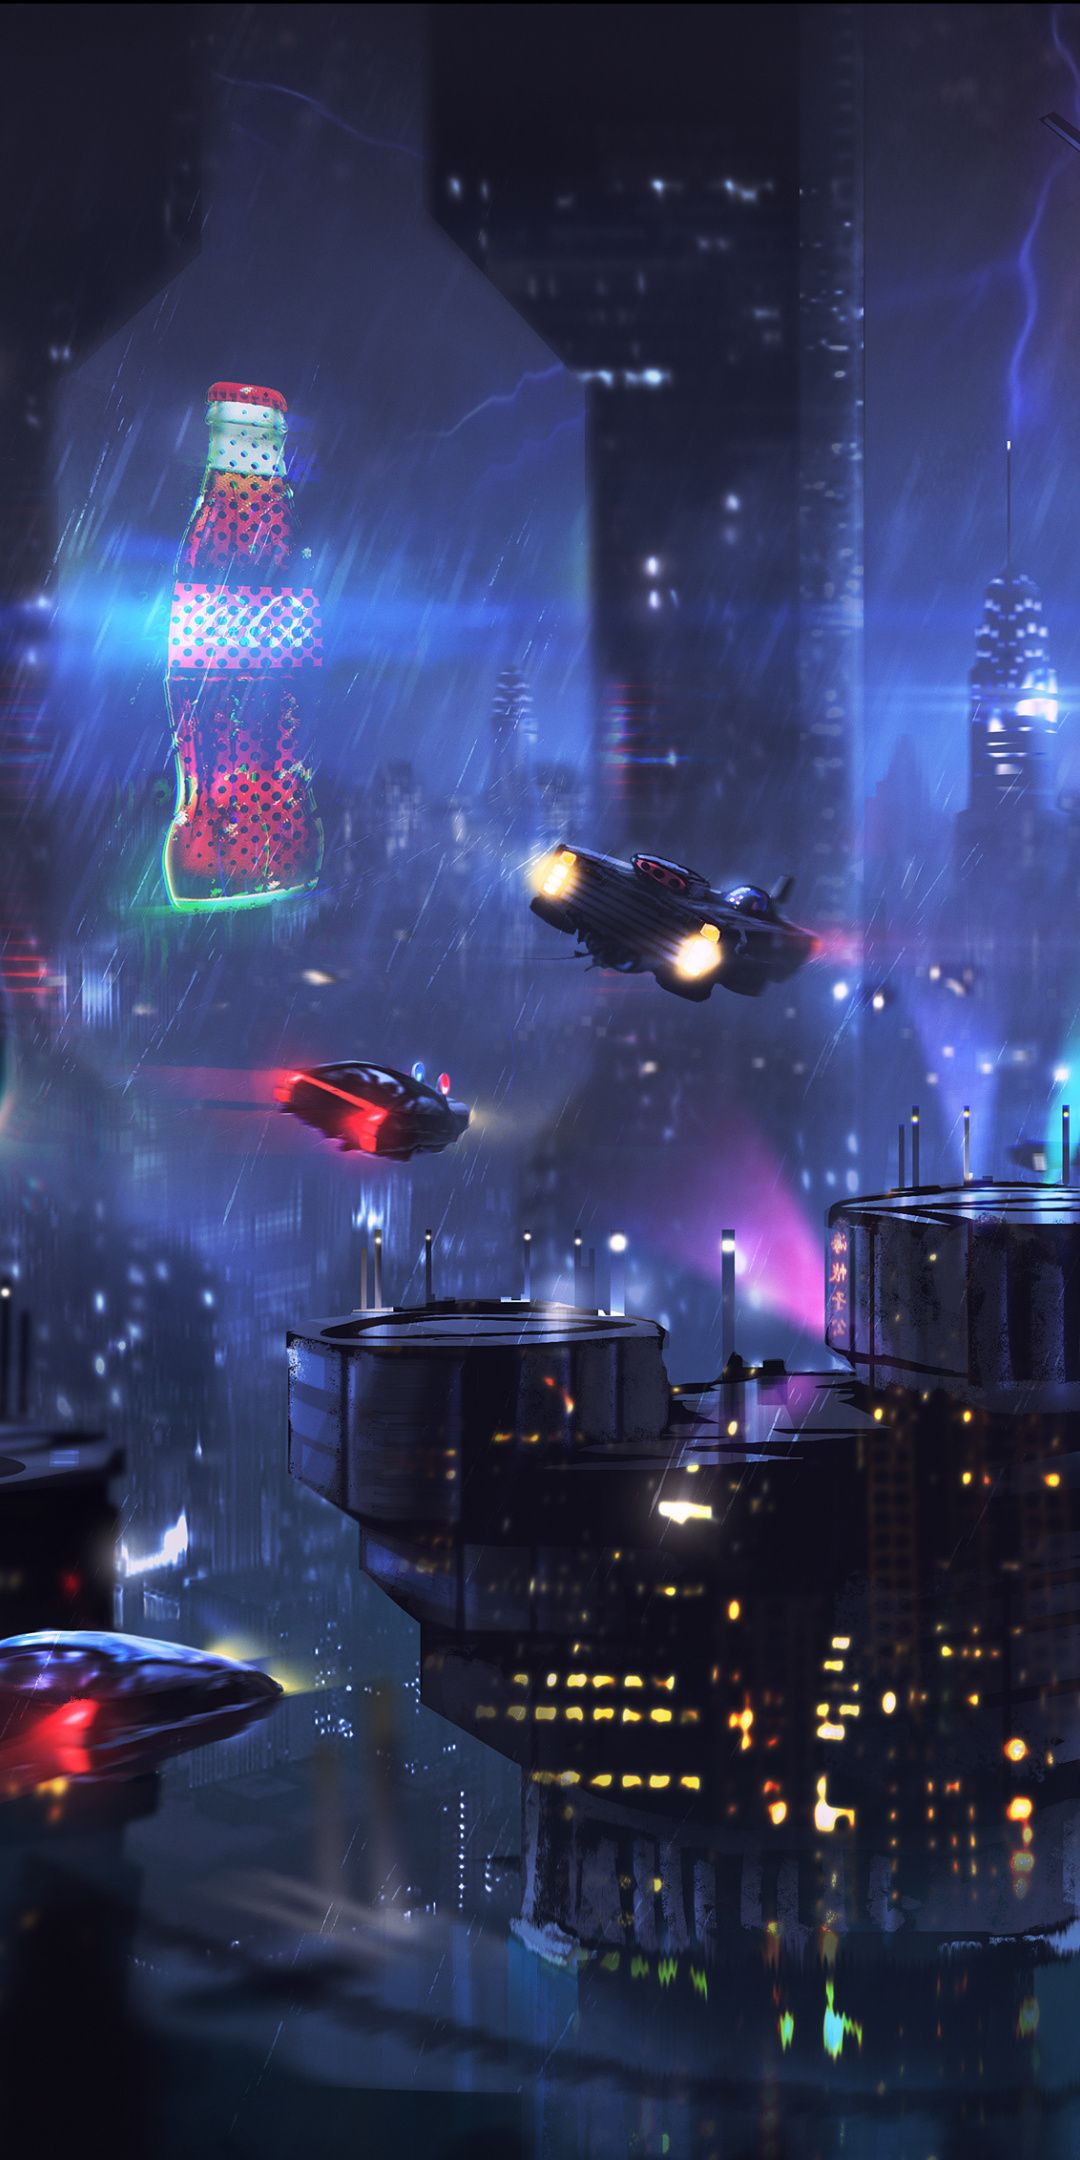 Cyberpunk Dark Cityscape Buildings Art 1080x2160 Wallpaper Cyberpunk City Futuristic City Cyberpunk Aesthetic